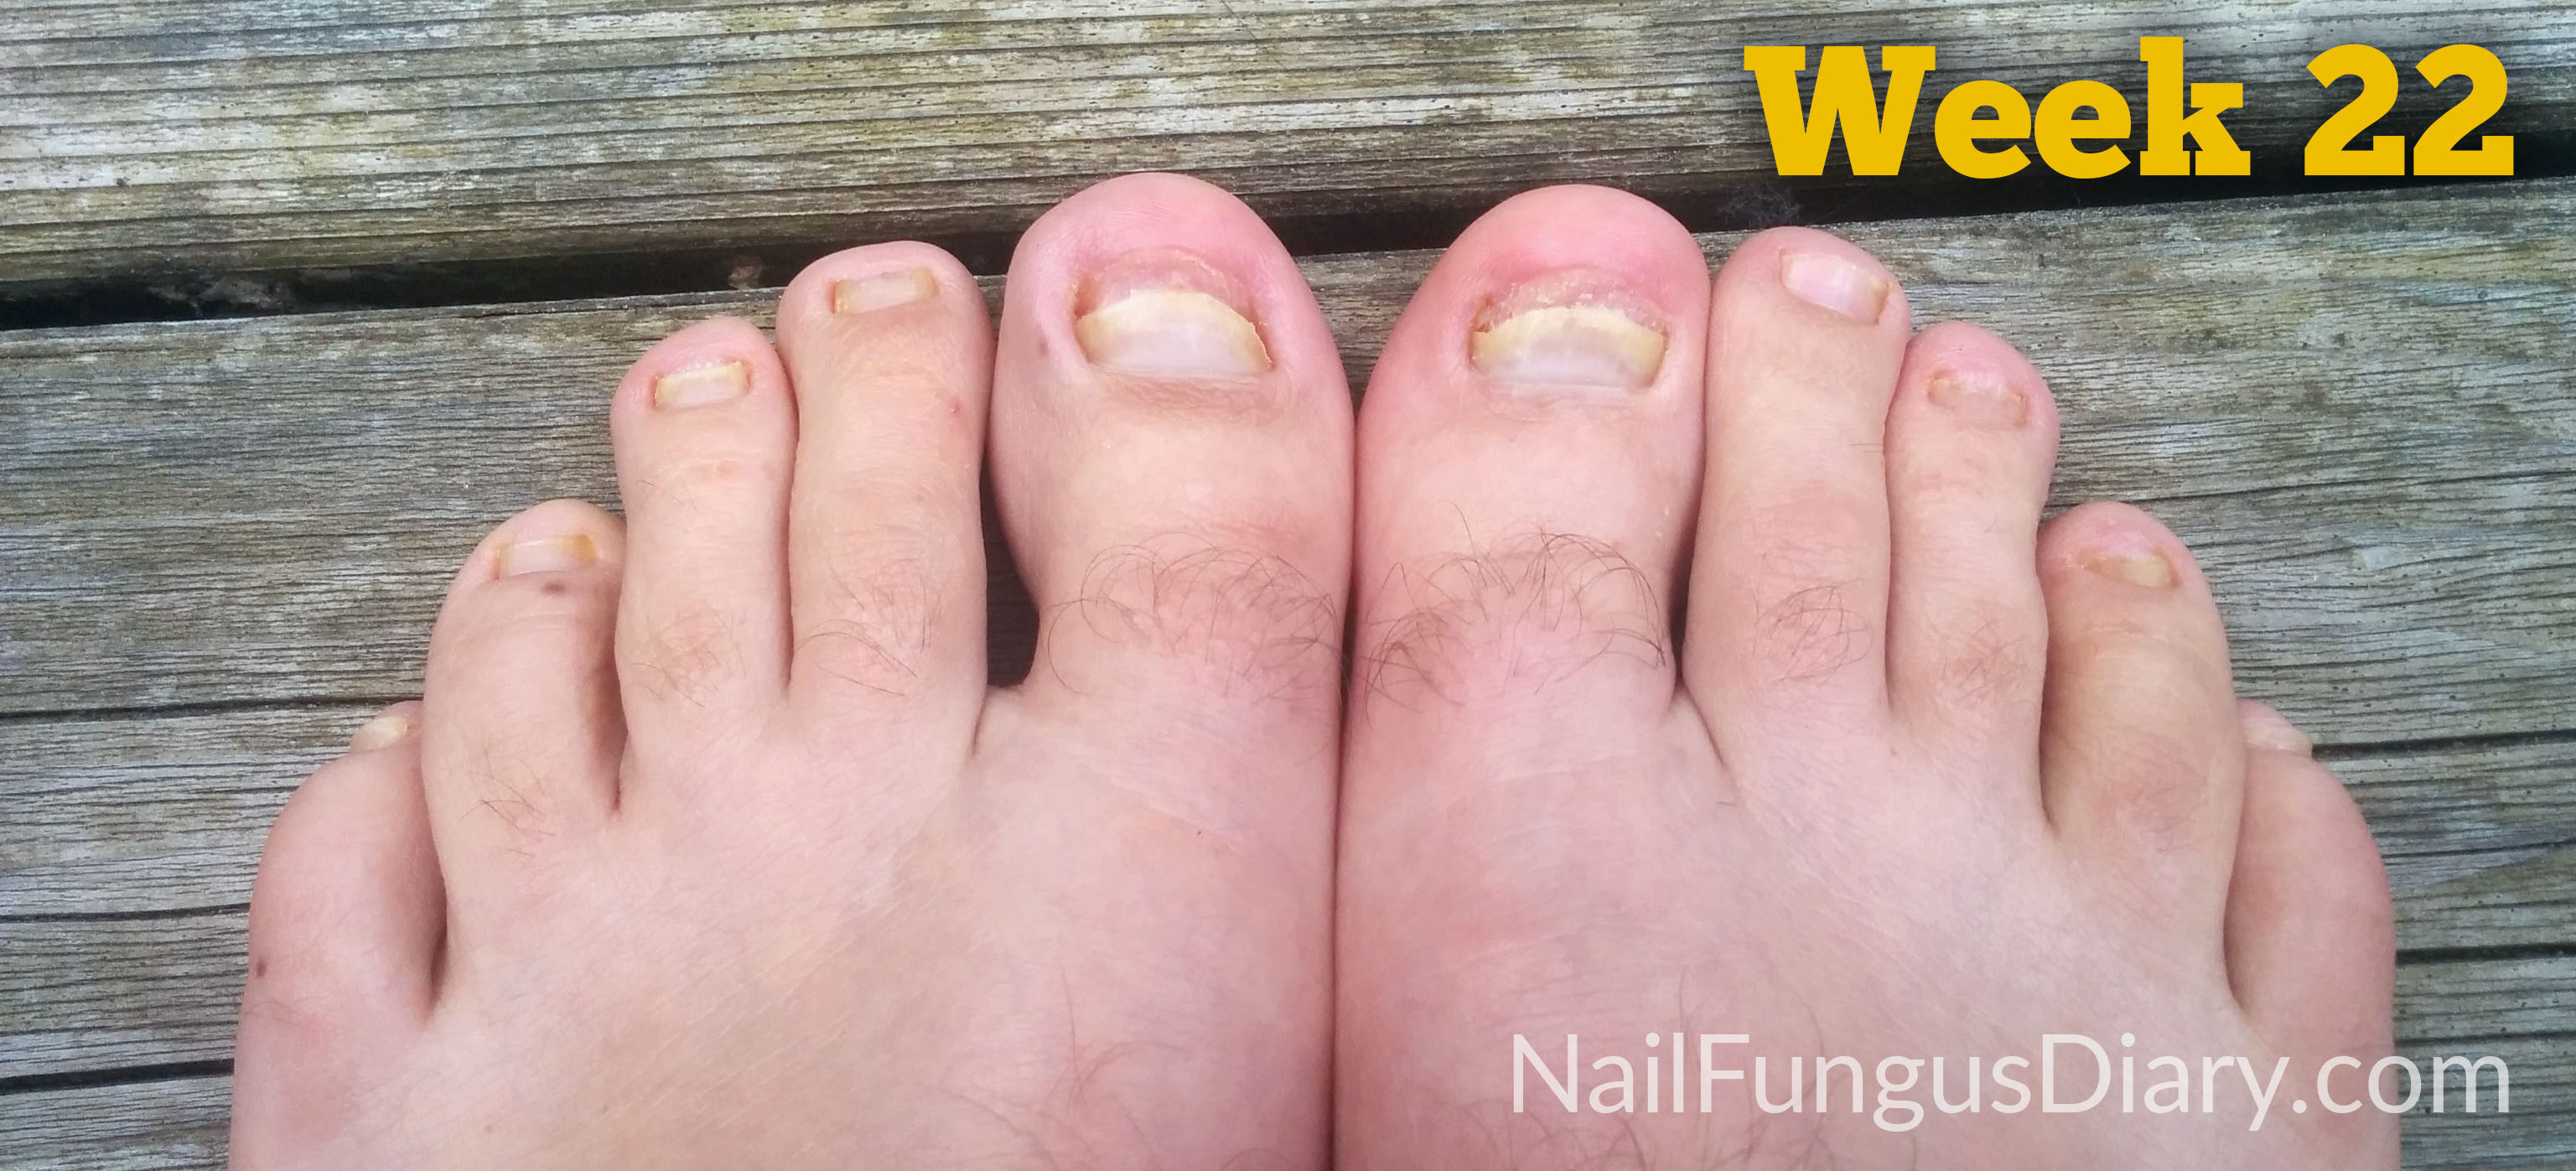 Nail fungus remedy week 22 picture